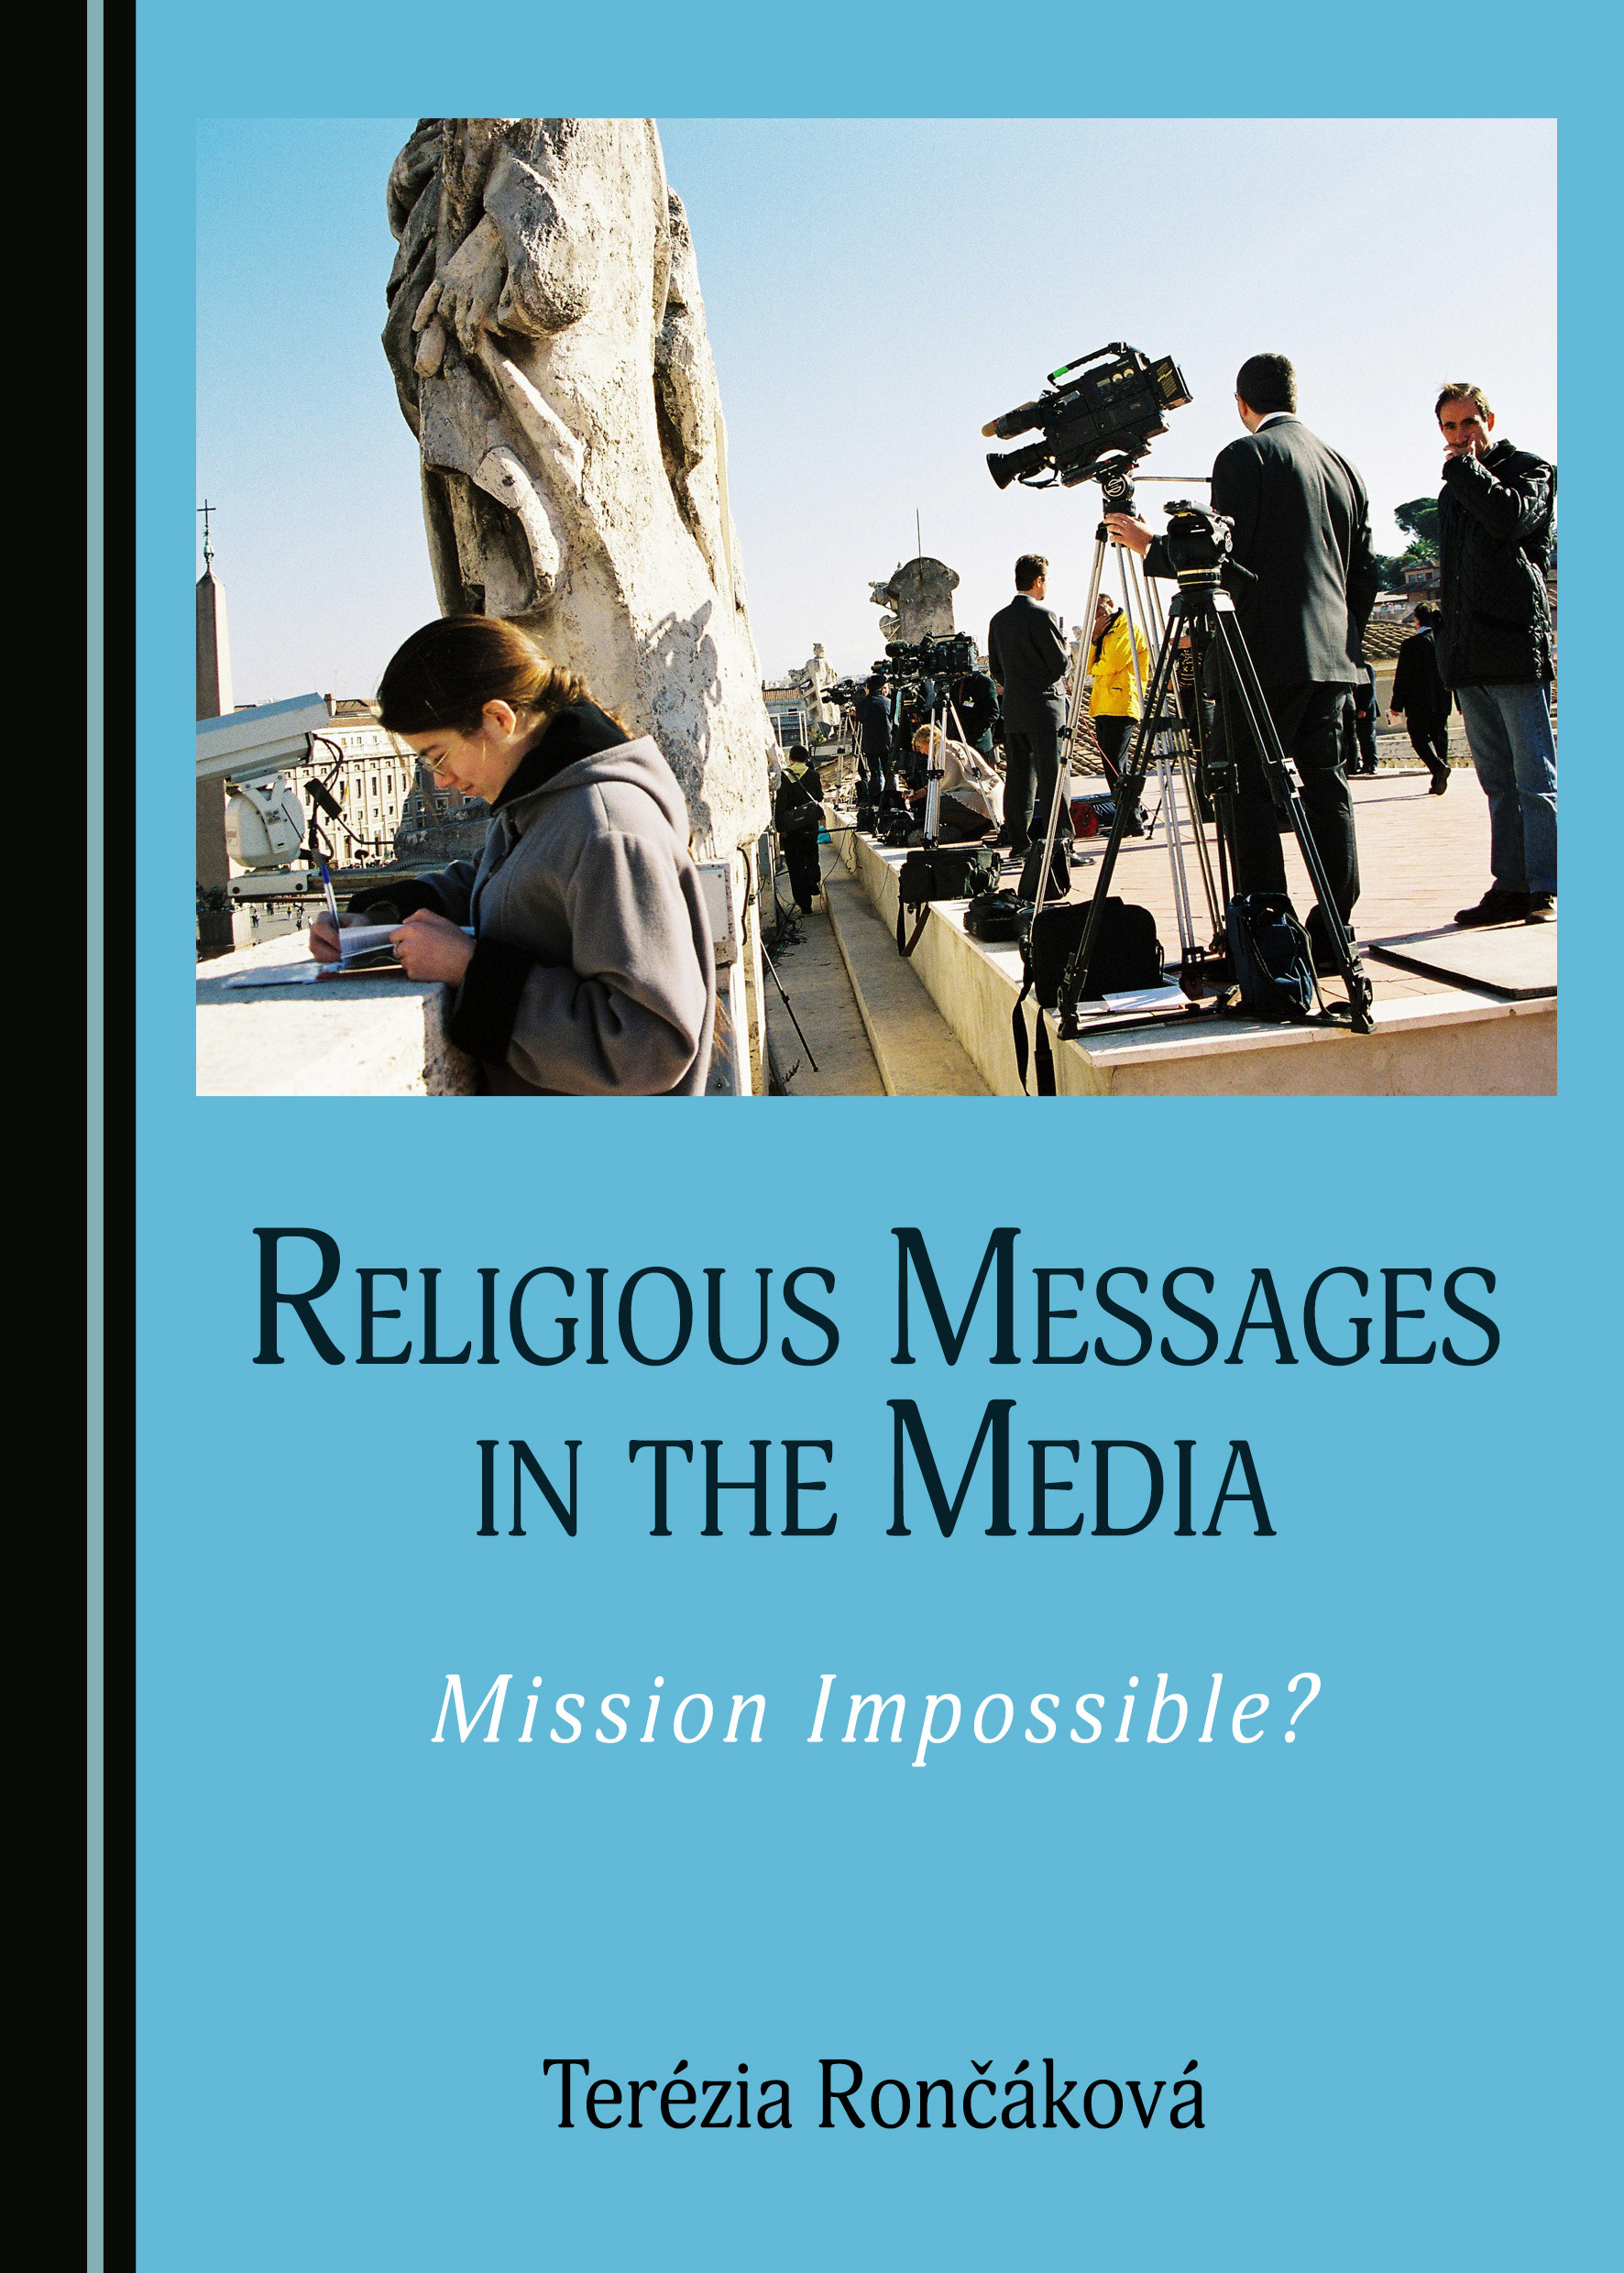 Religious Messages in the Media: Mission Impossible?